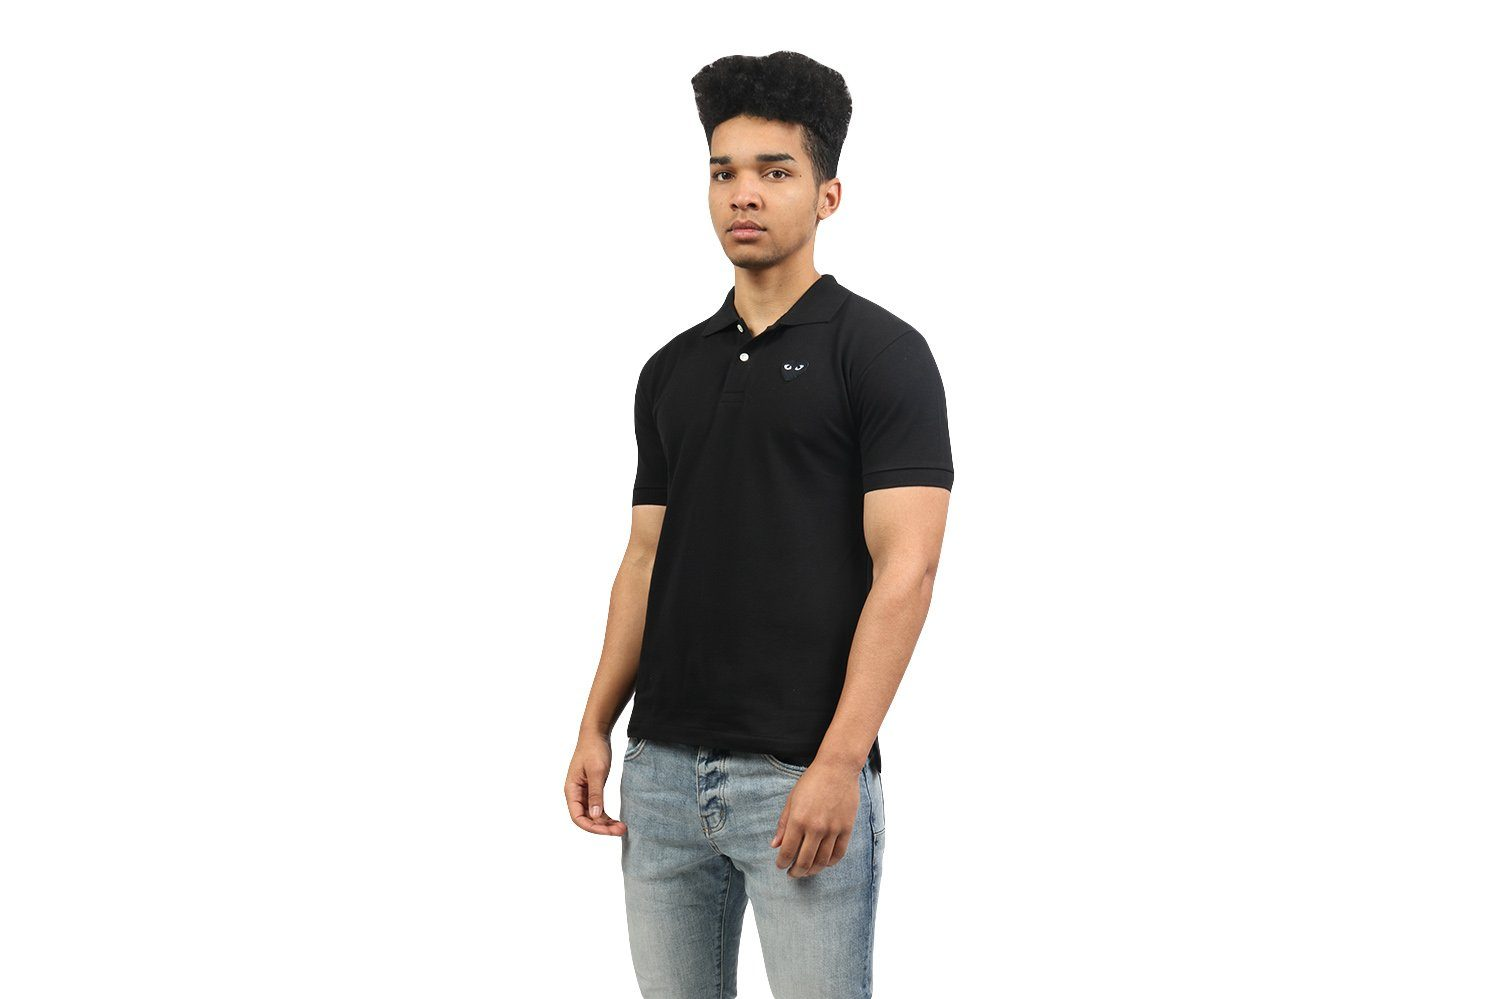 BLACK HEART POLO SHIRT MENS SOFTGOODS COMME DES GARCONS